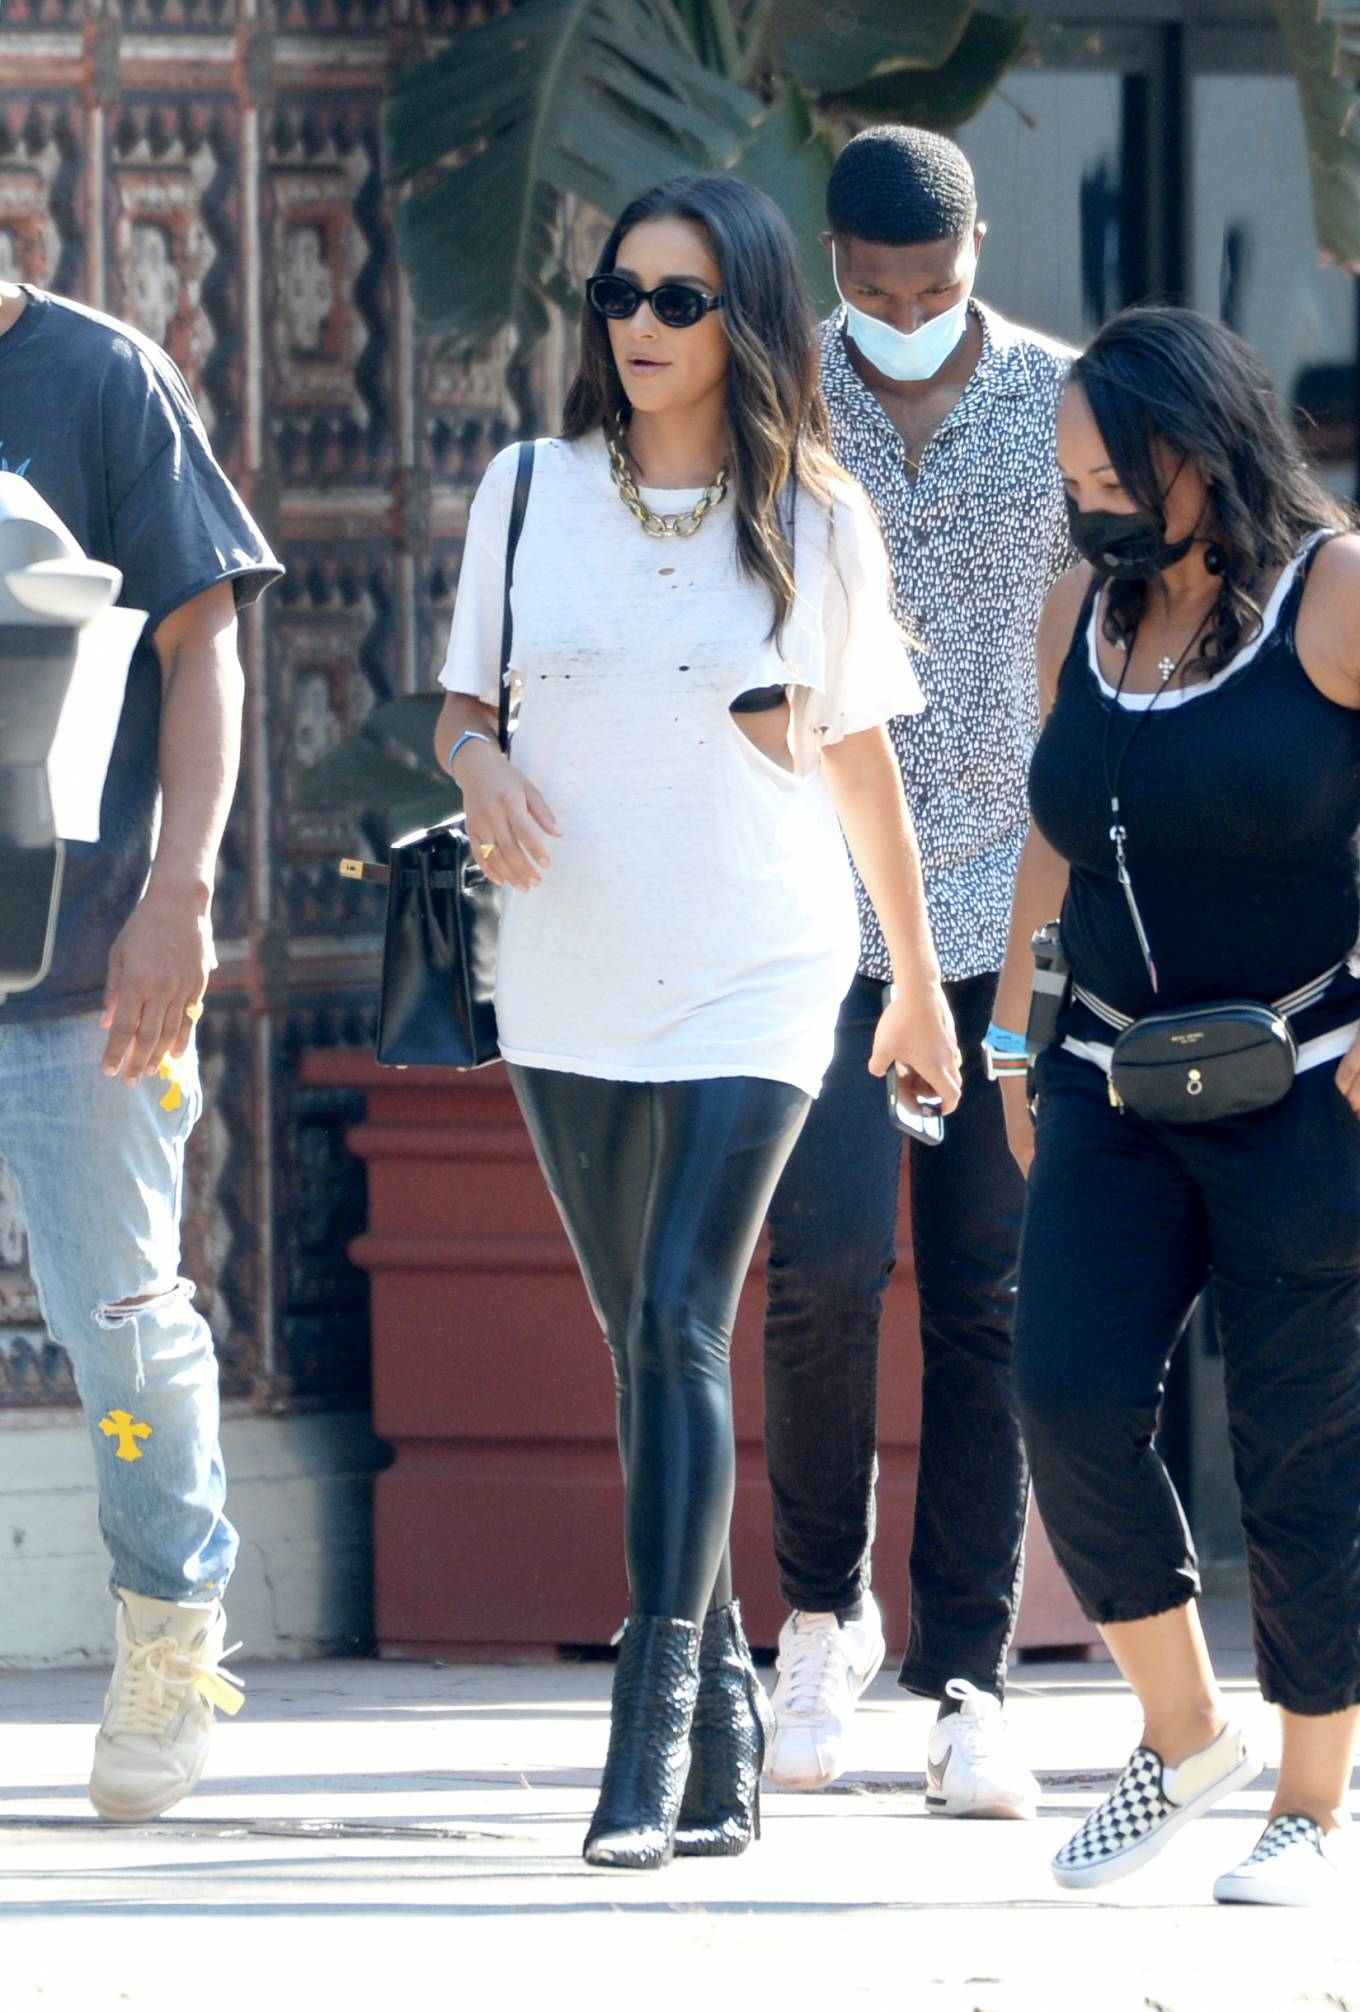 Shay Mitchell - Spotted out and about in LA